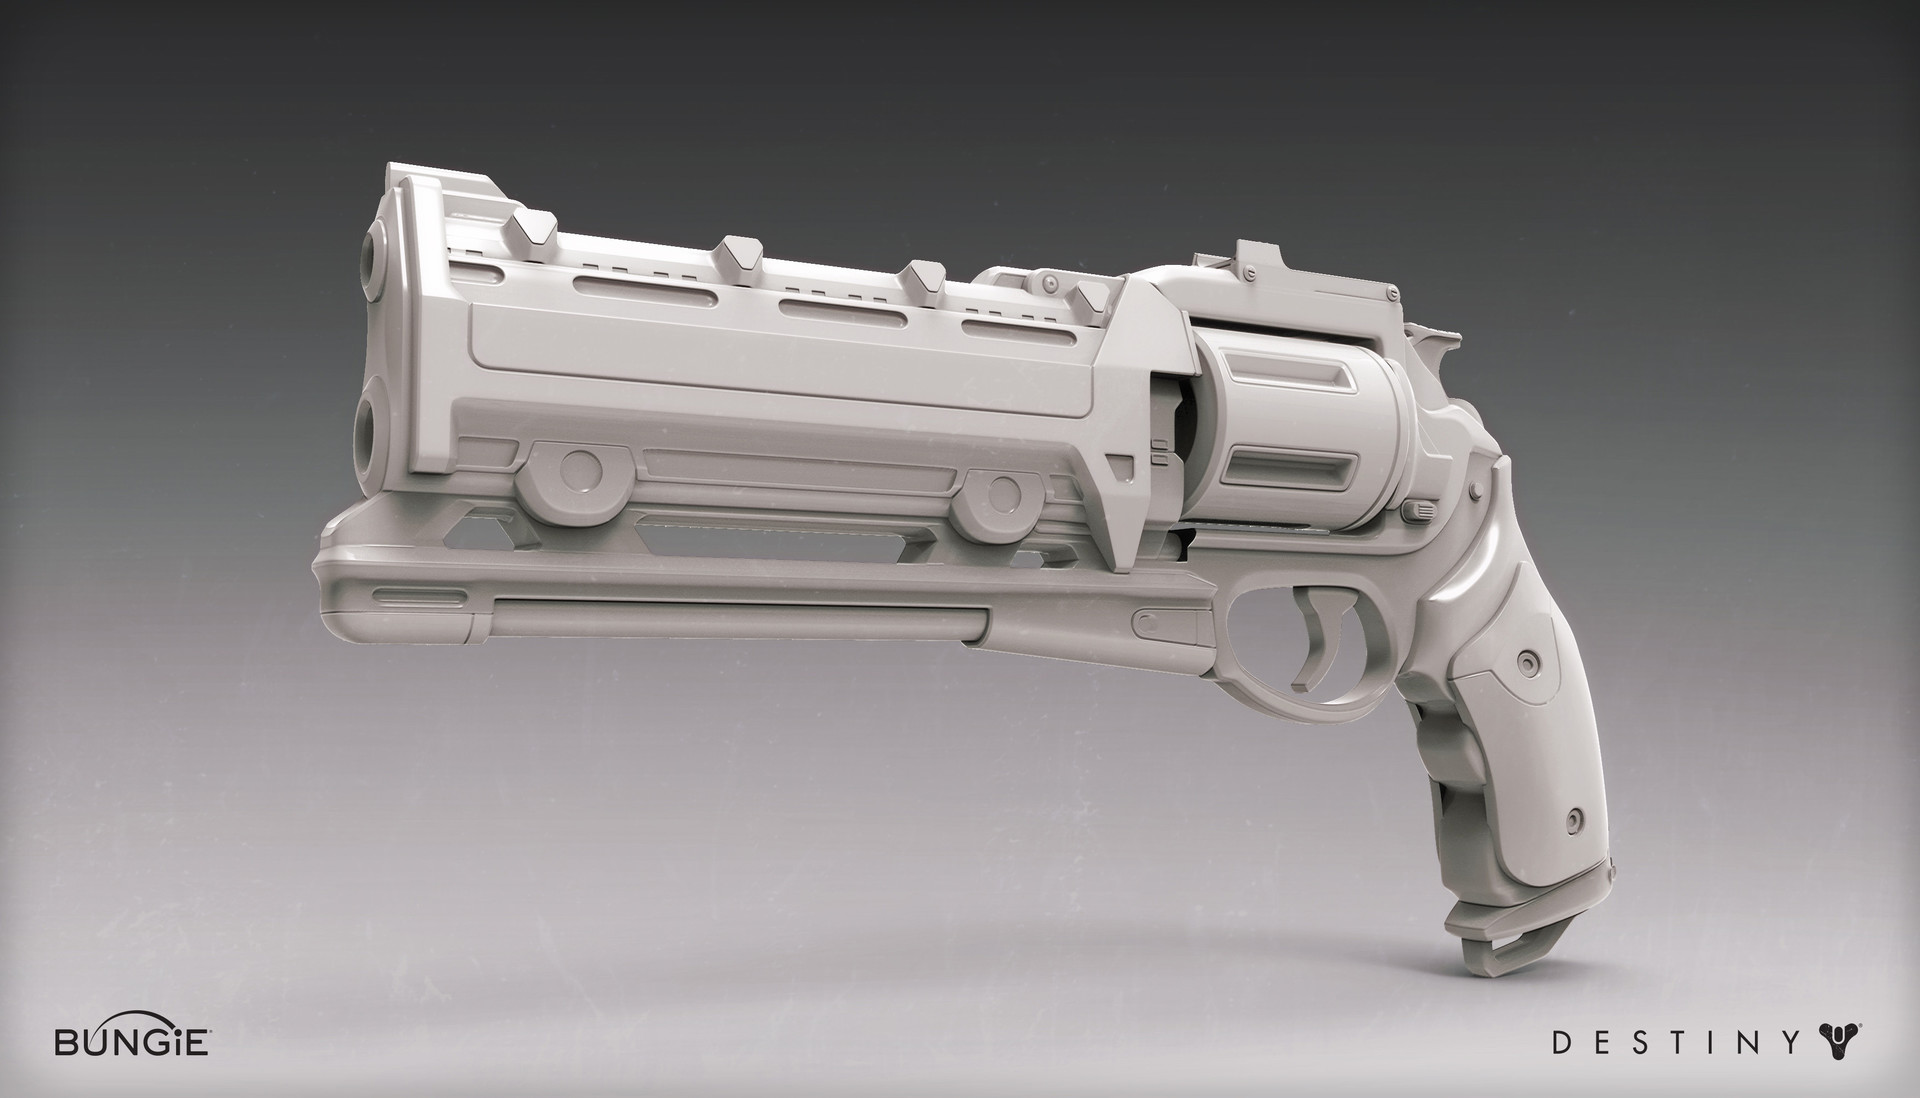 Mark van haitsma hand cannon 1d front perspective gray